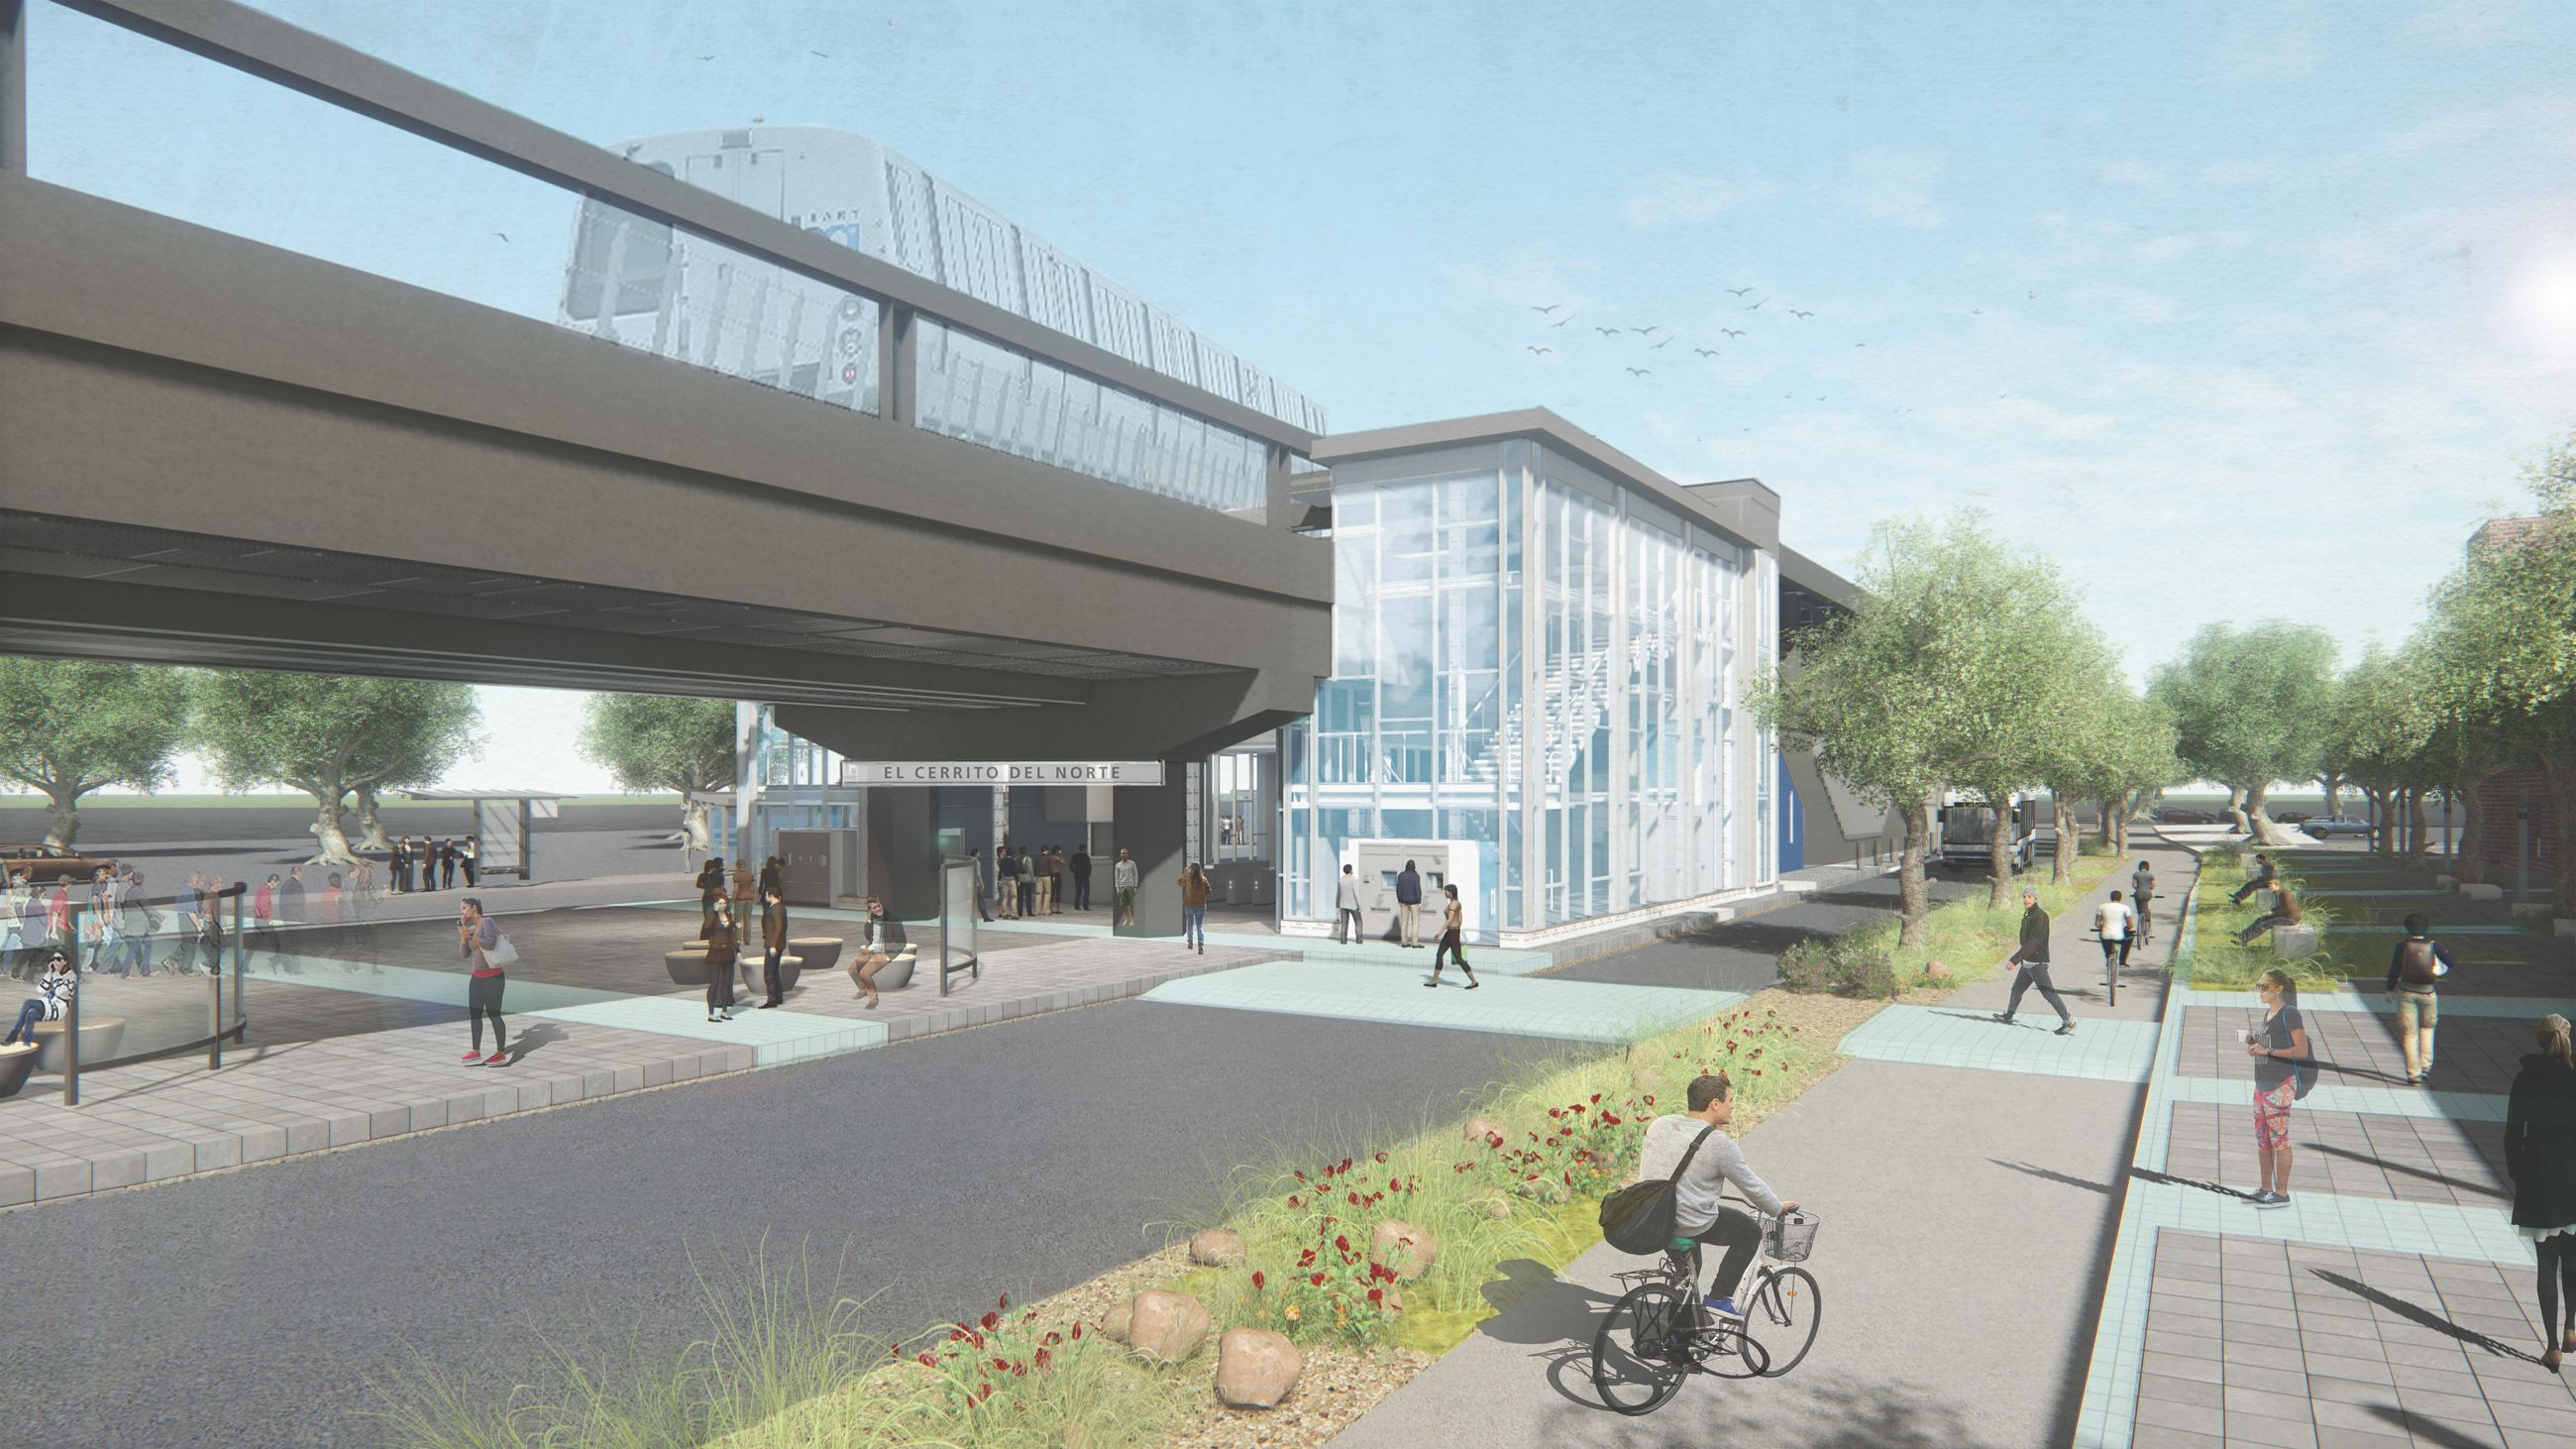 Rendering of the proposed expanded station at El Cerrito del Norte and improved Ohlone Greenway.